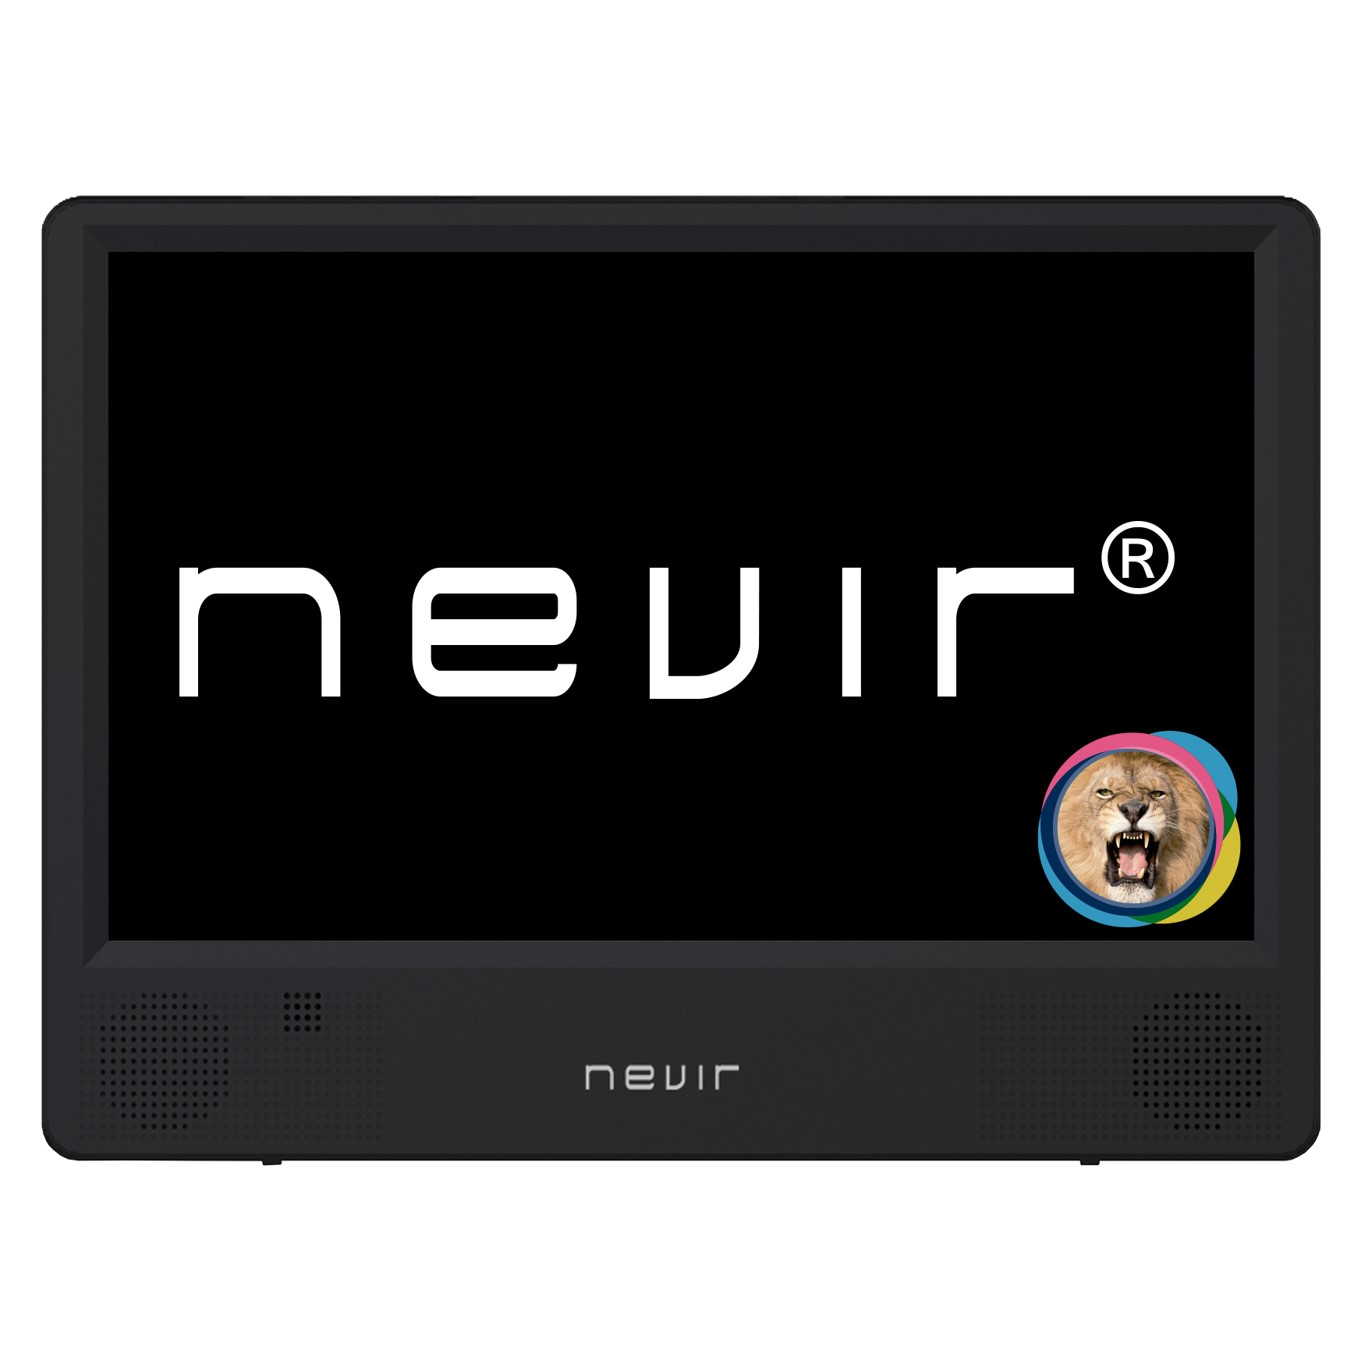 "TV PORTATIL NEVIR 10.1"" LED/ NVR-7302-TDT10P2/ TDT/ USB"